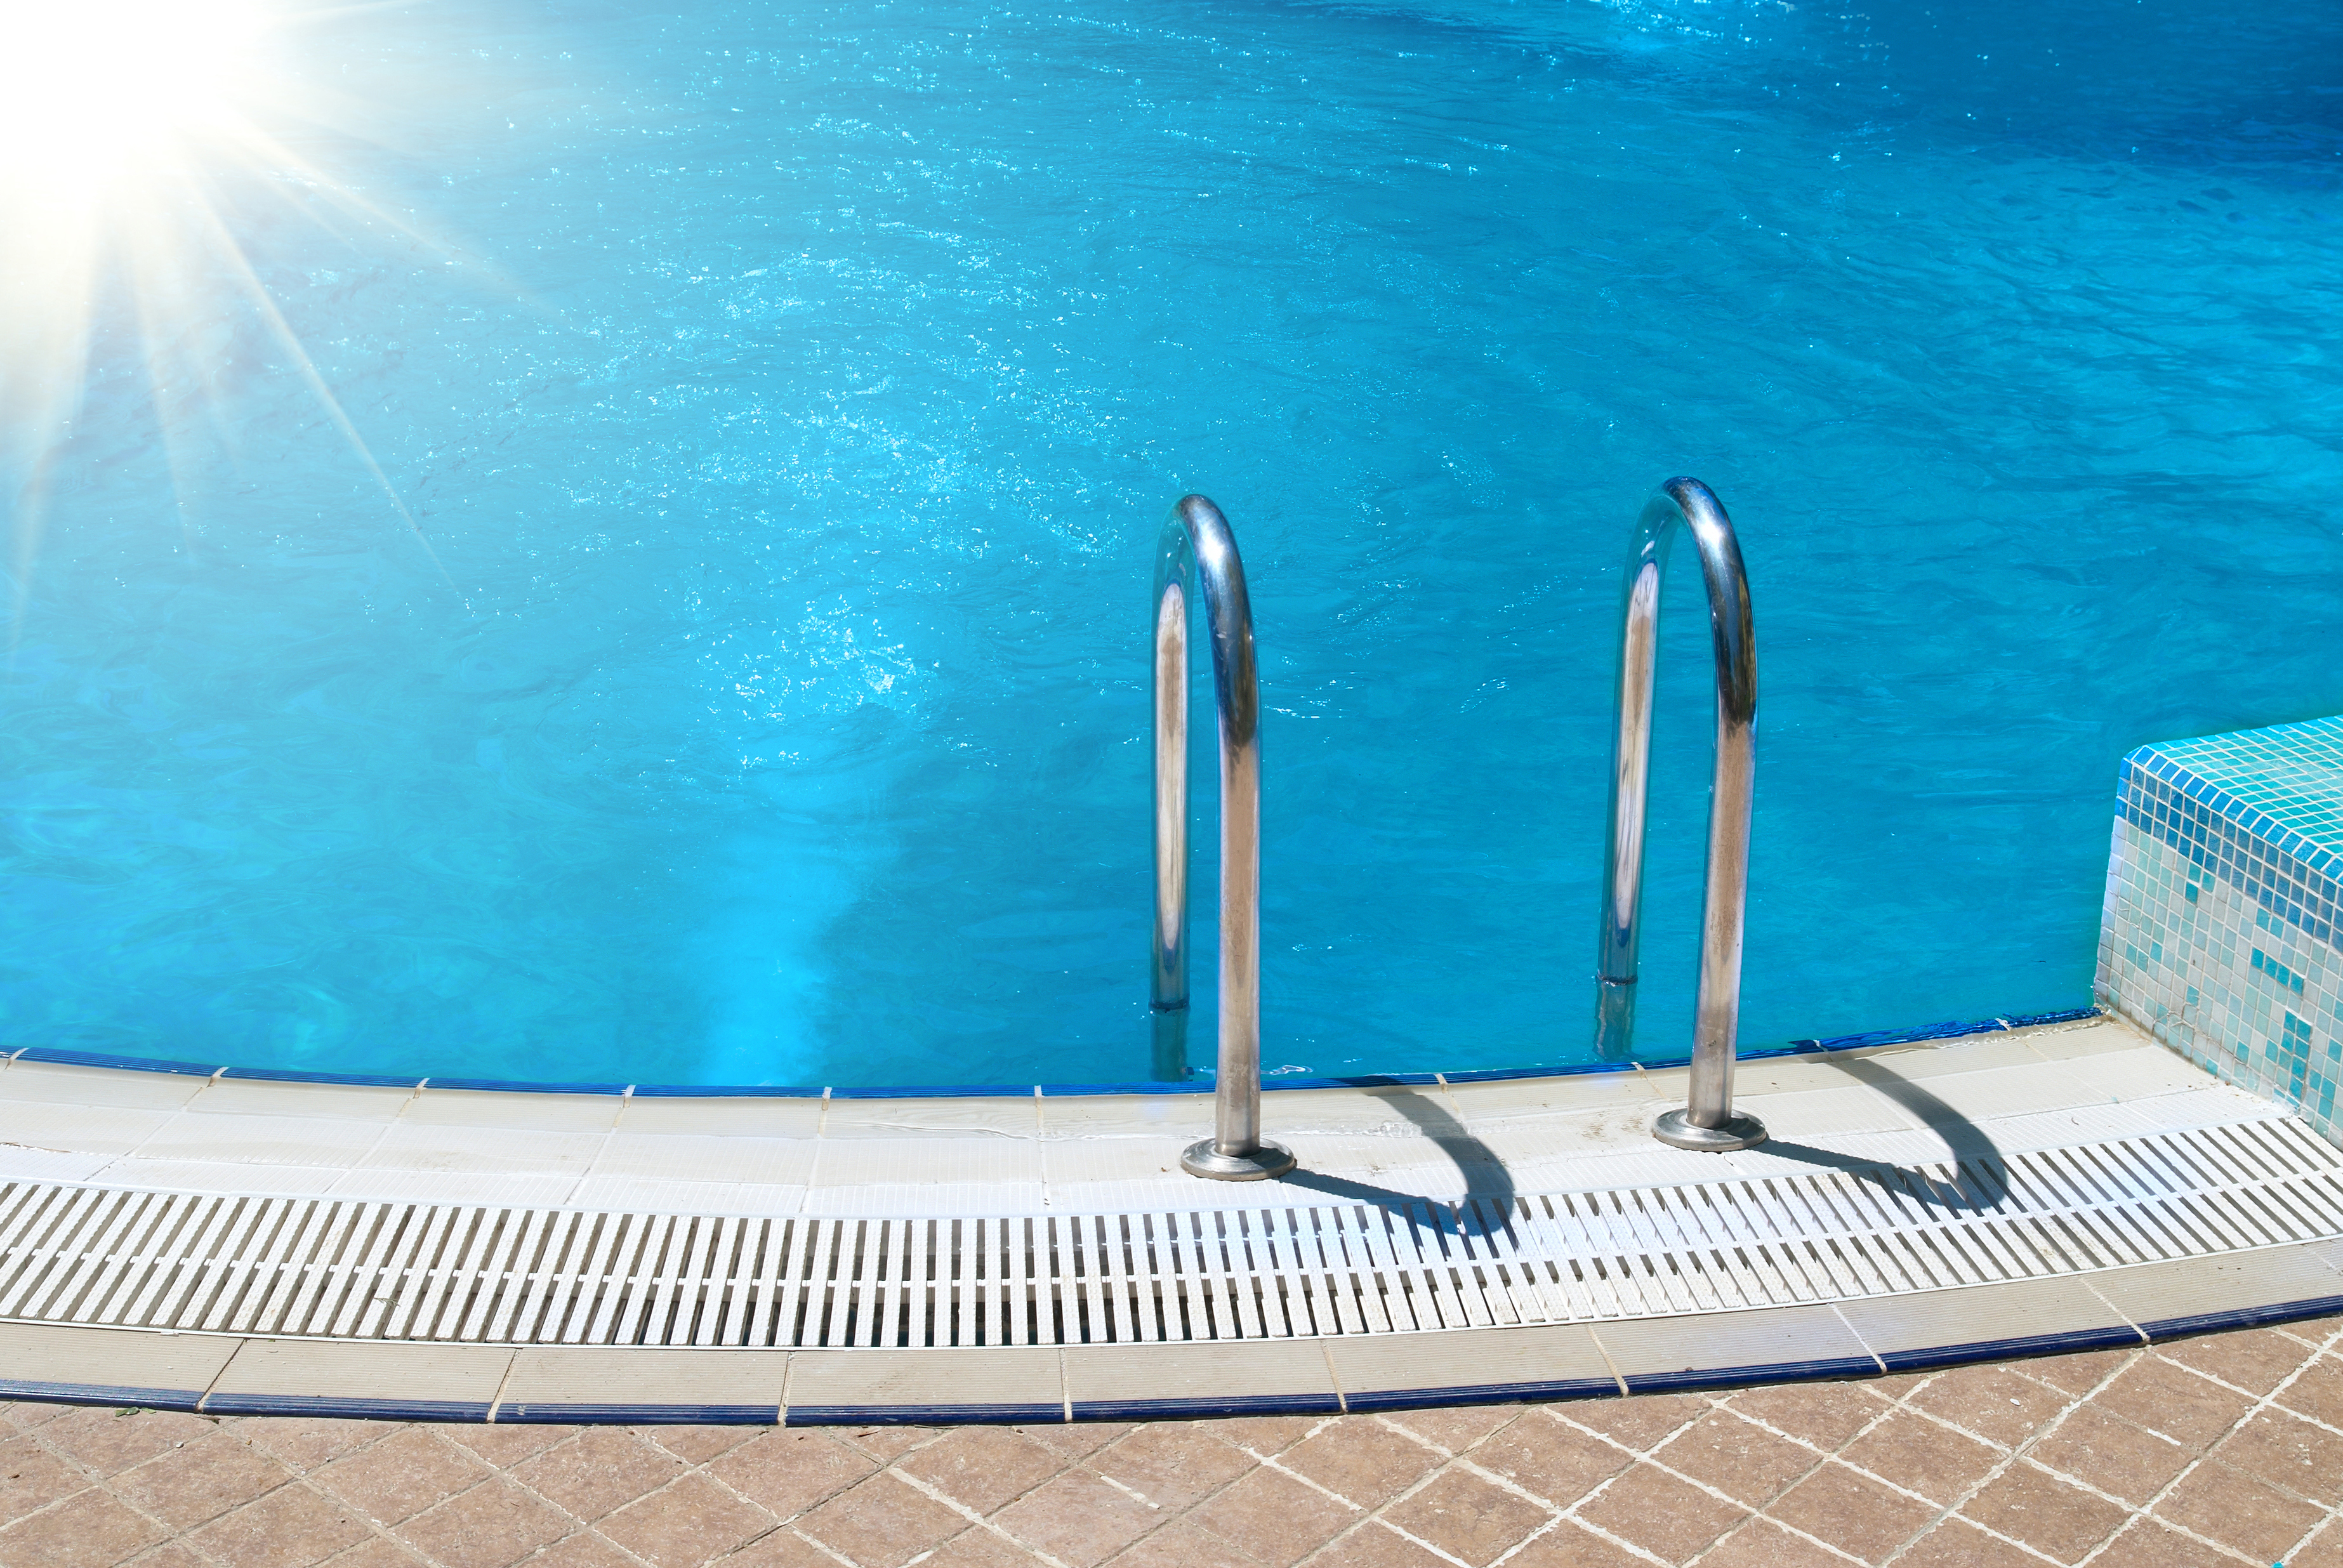 Swimming Pool Maintenance Archives - A Better Pool Service